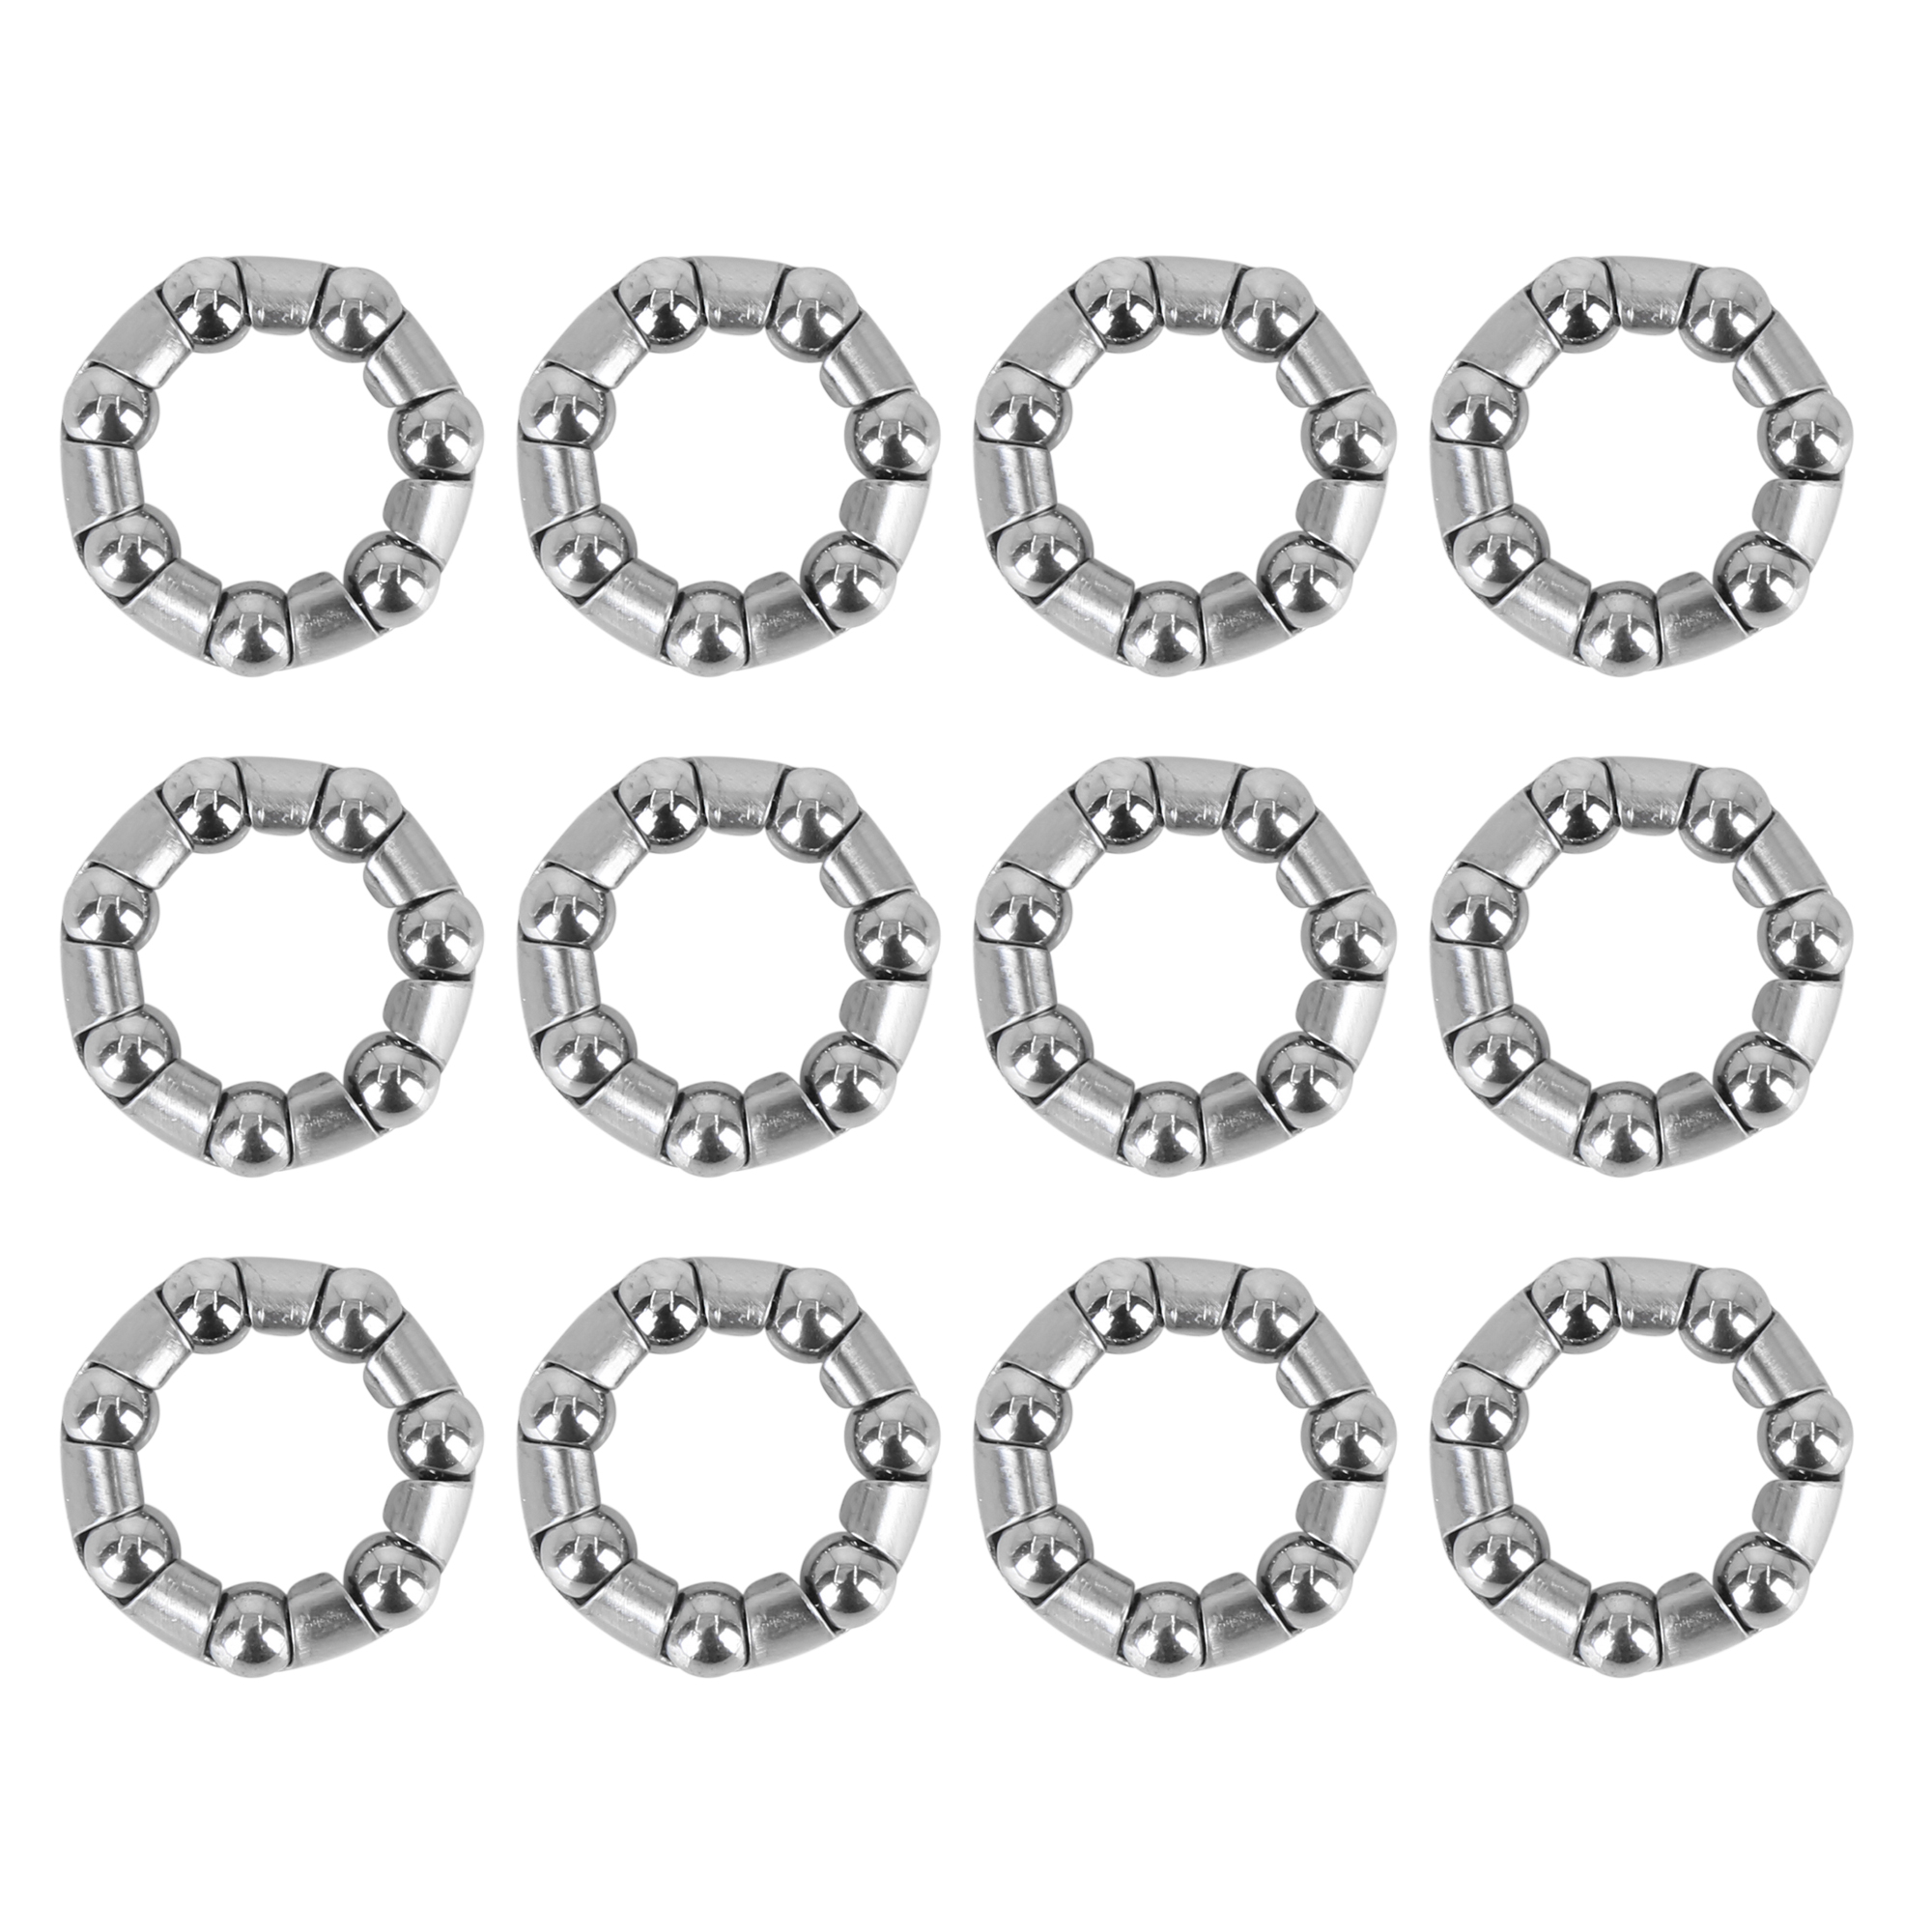 12pcs 37mm x 20 Bicycle Bike Ball Bearing with Retainer Ball Bearing Cages Crank